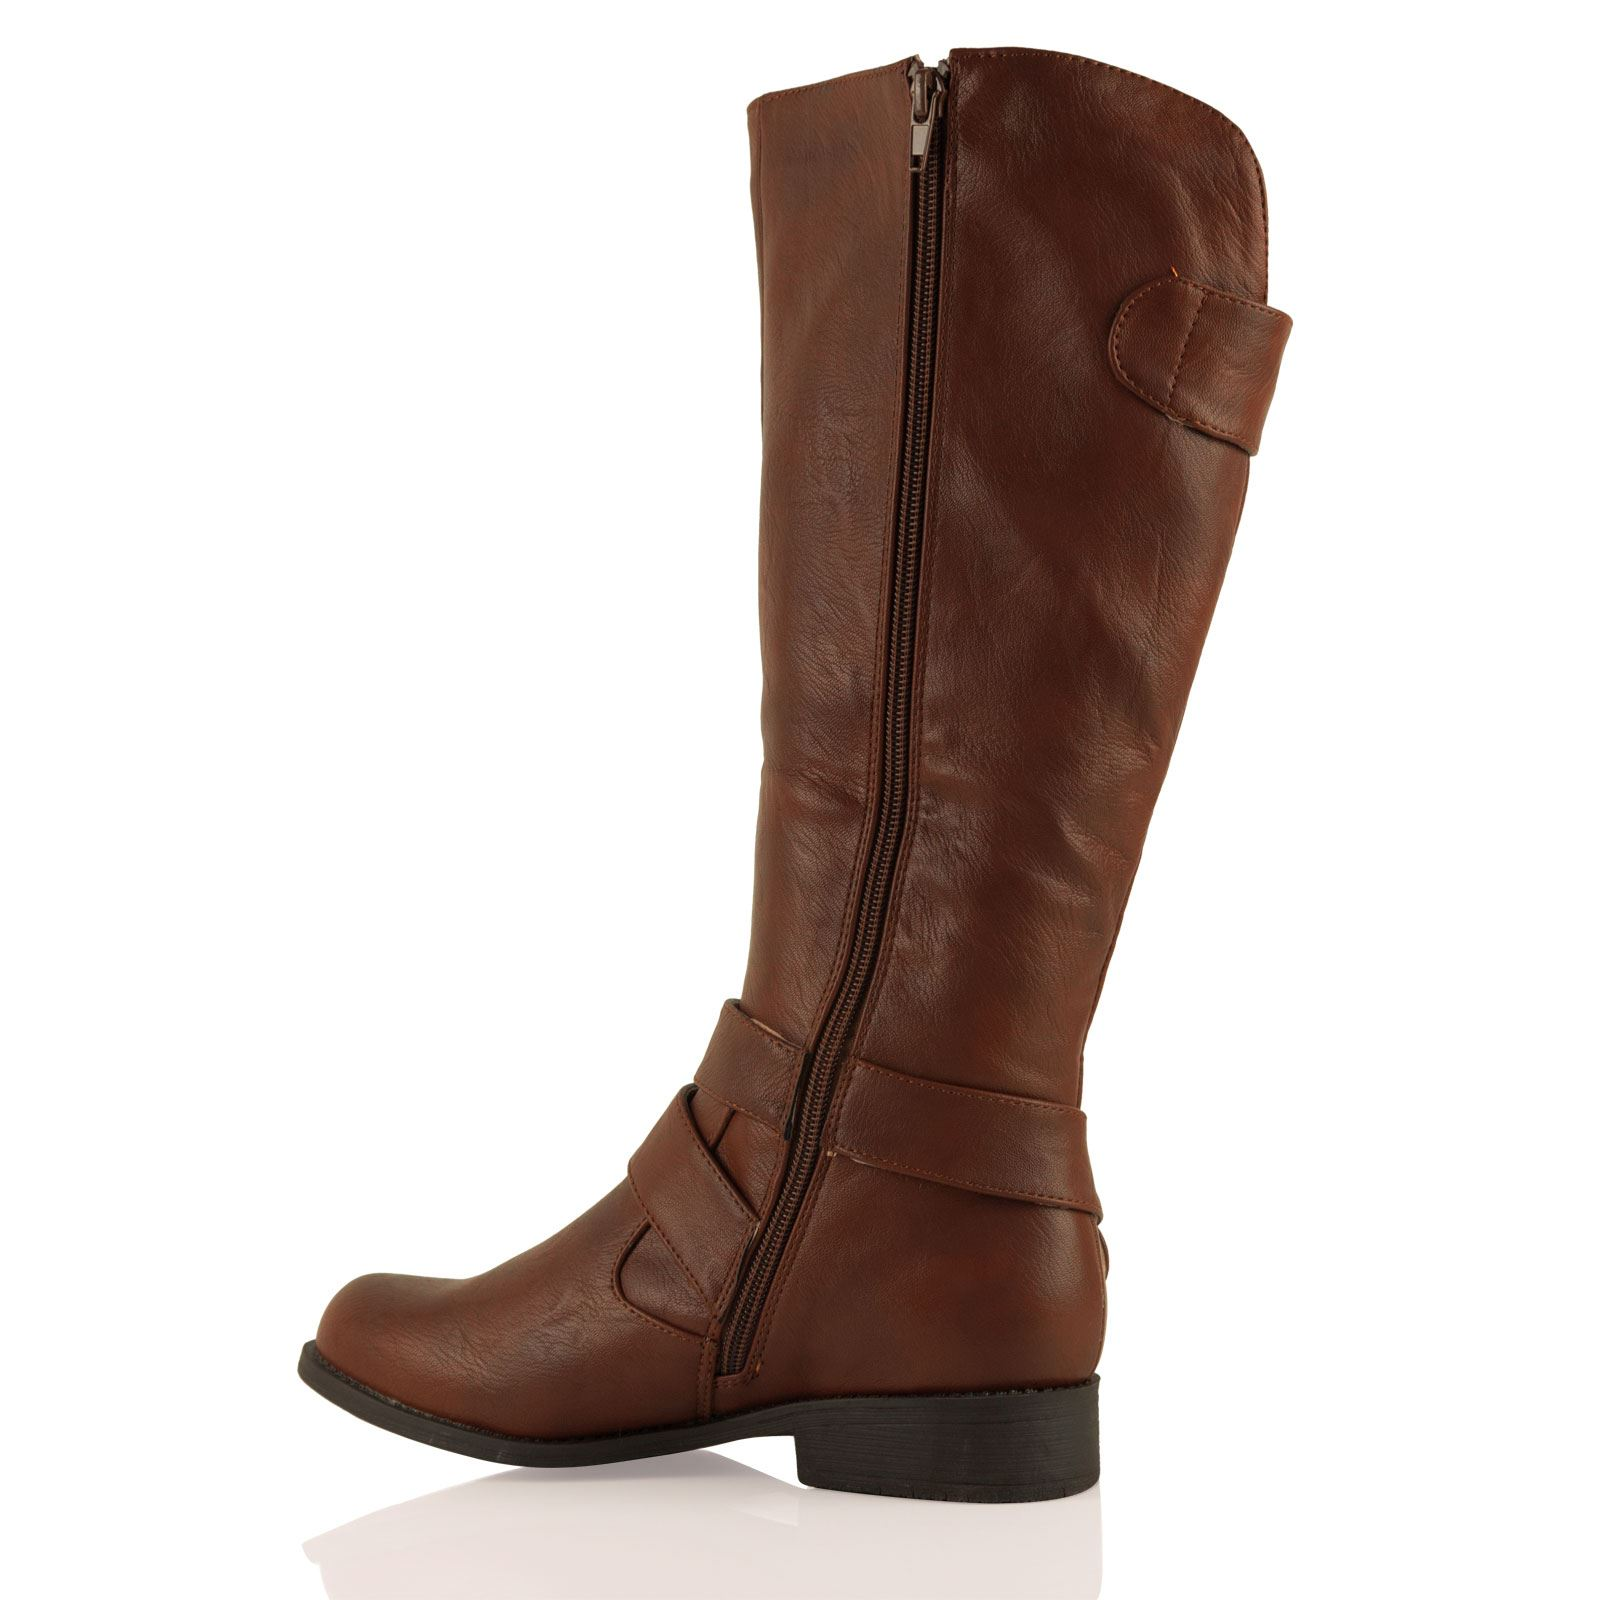 Luxury Womens Mid Calf Leather Look Fashion Riding Boots Flats Buckle Biker Ladies Size